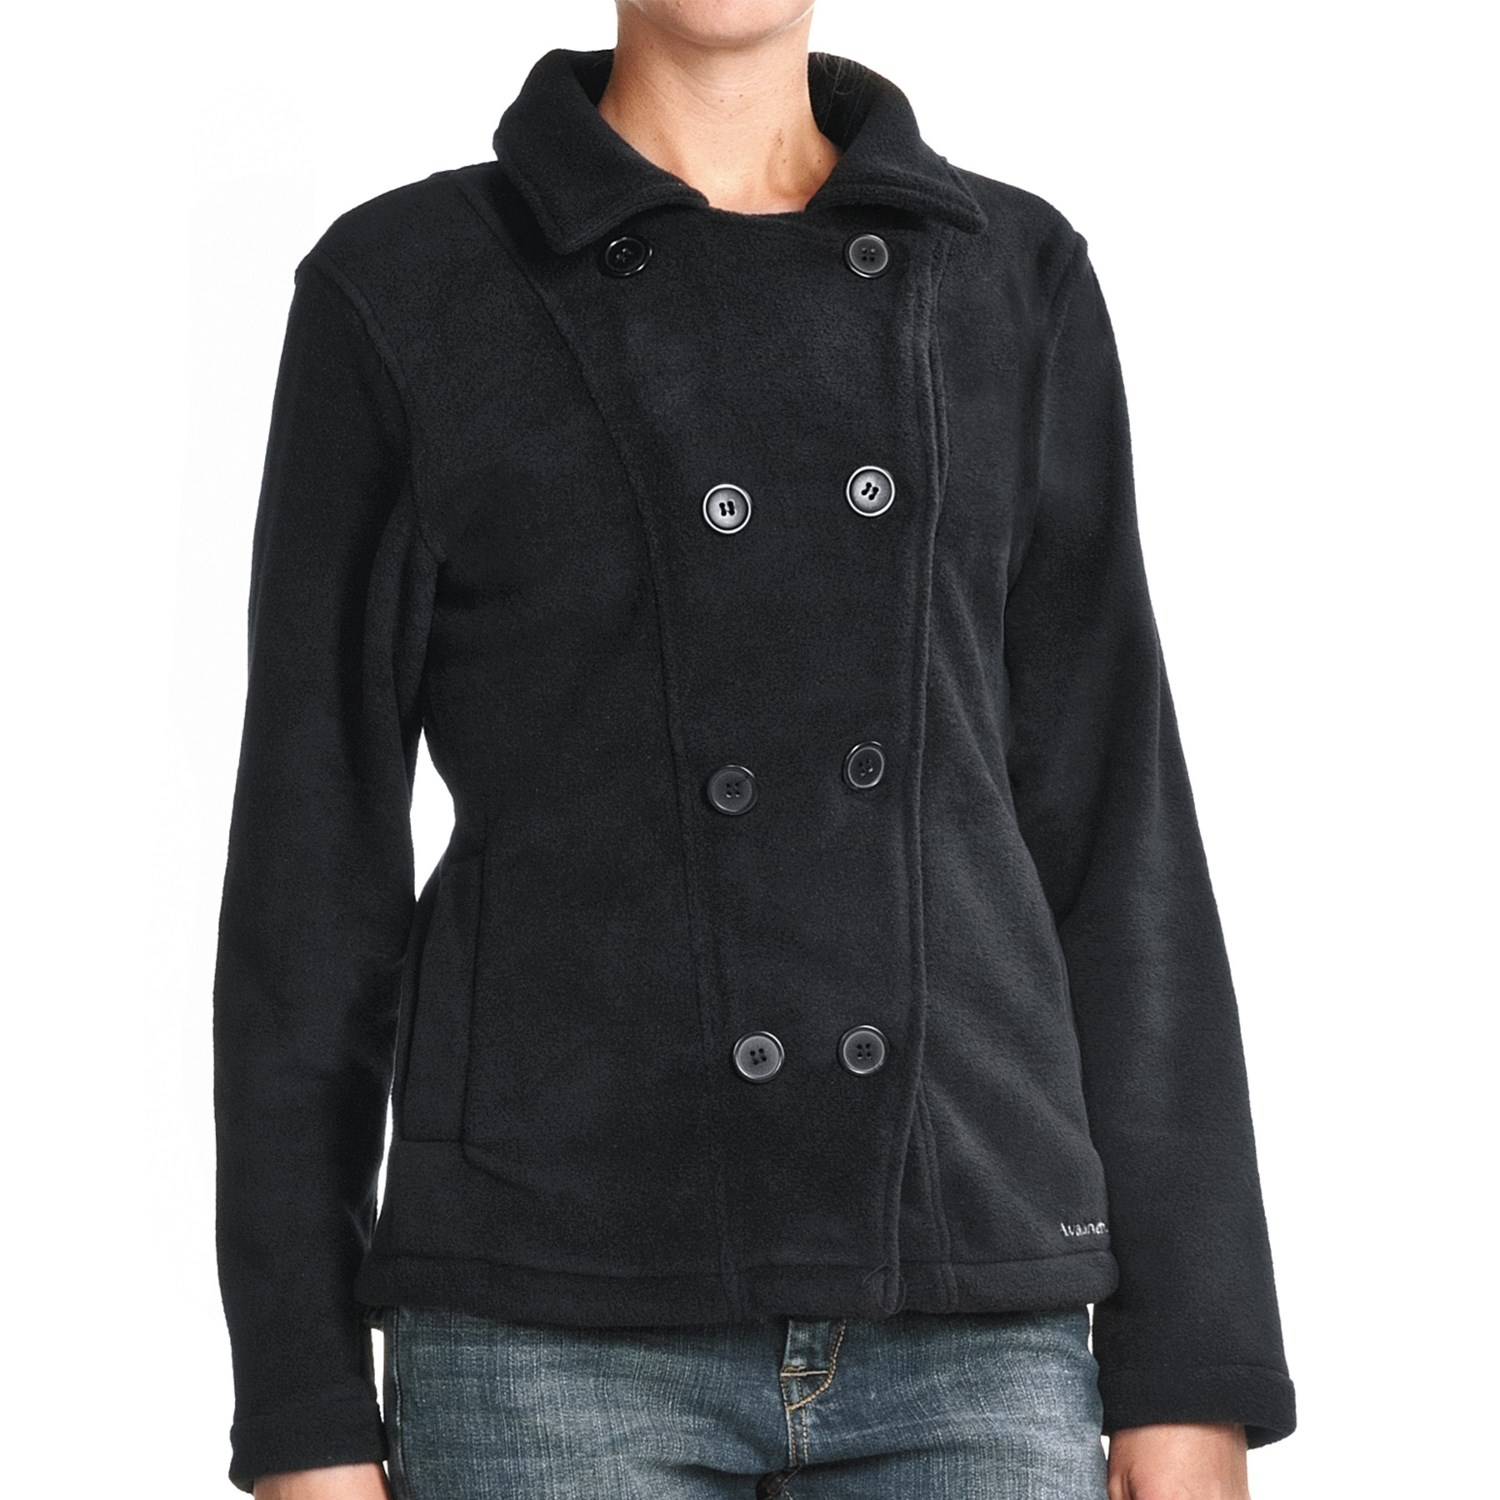 Elegant The Trench Coat Is A True Classic Fashion Staple That  So You Better Make Sure Your Underwear Is The Most Comfortable Clothing You Own Tommy John Makes The